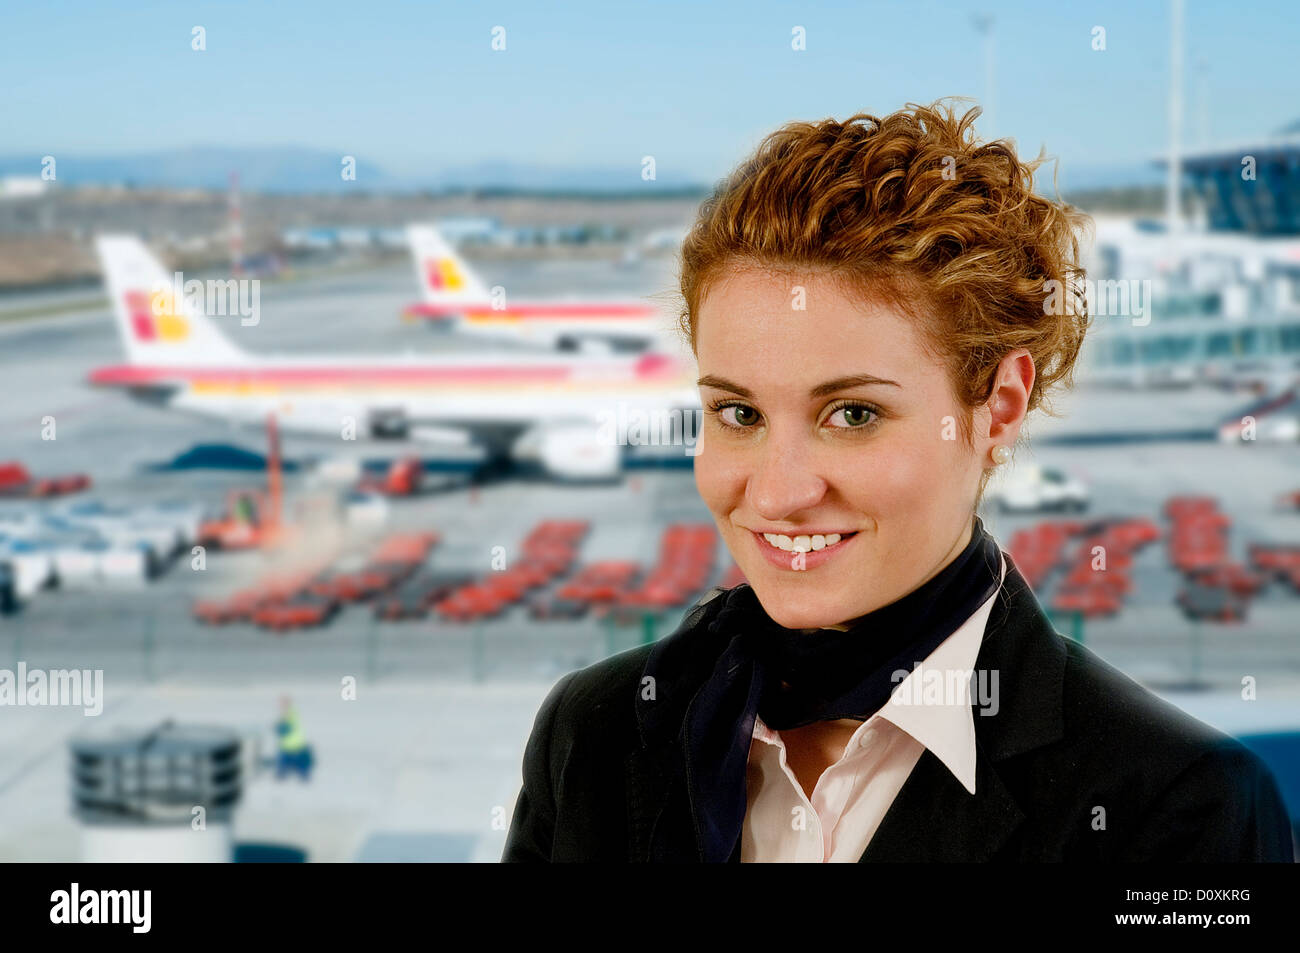 Young air hostess smiling and looking at the camera. - Stock Image